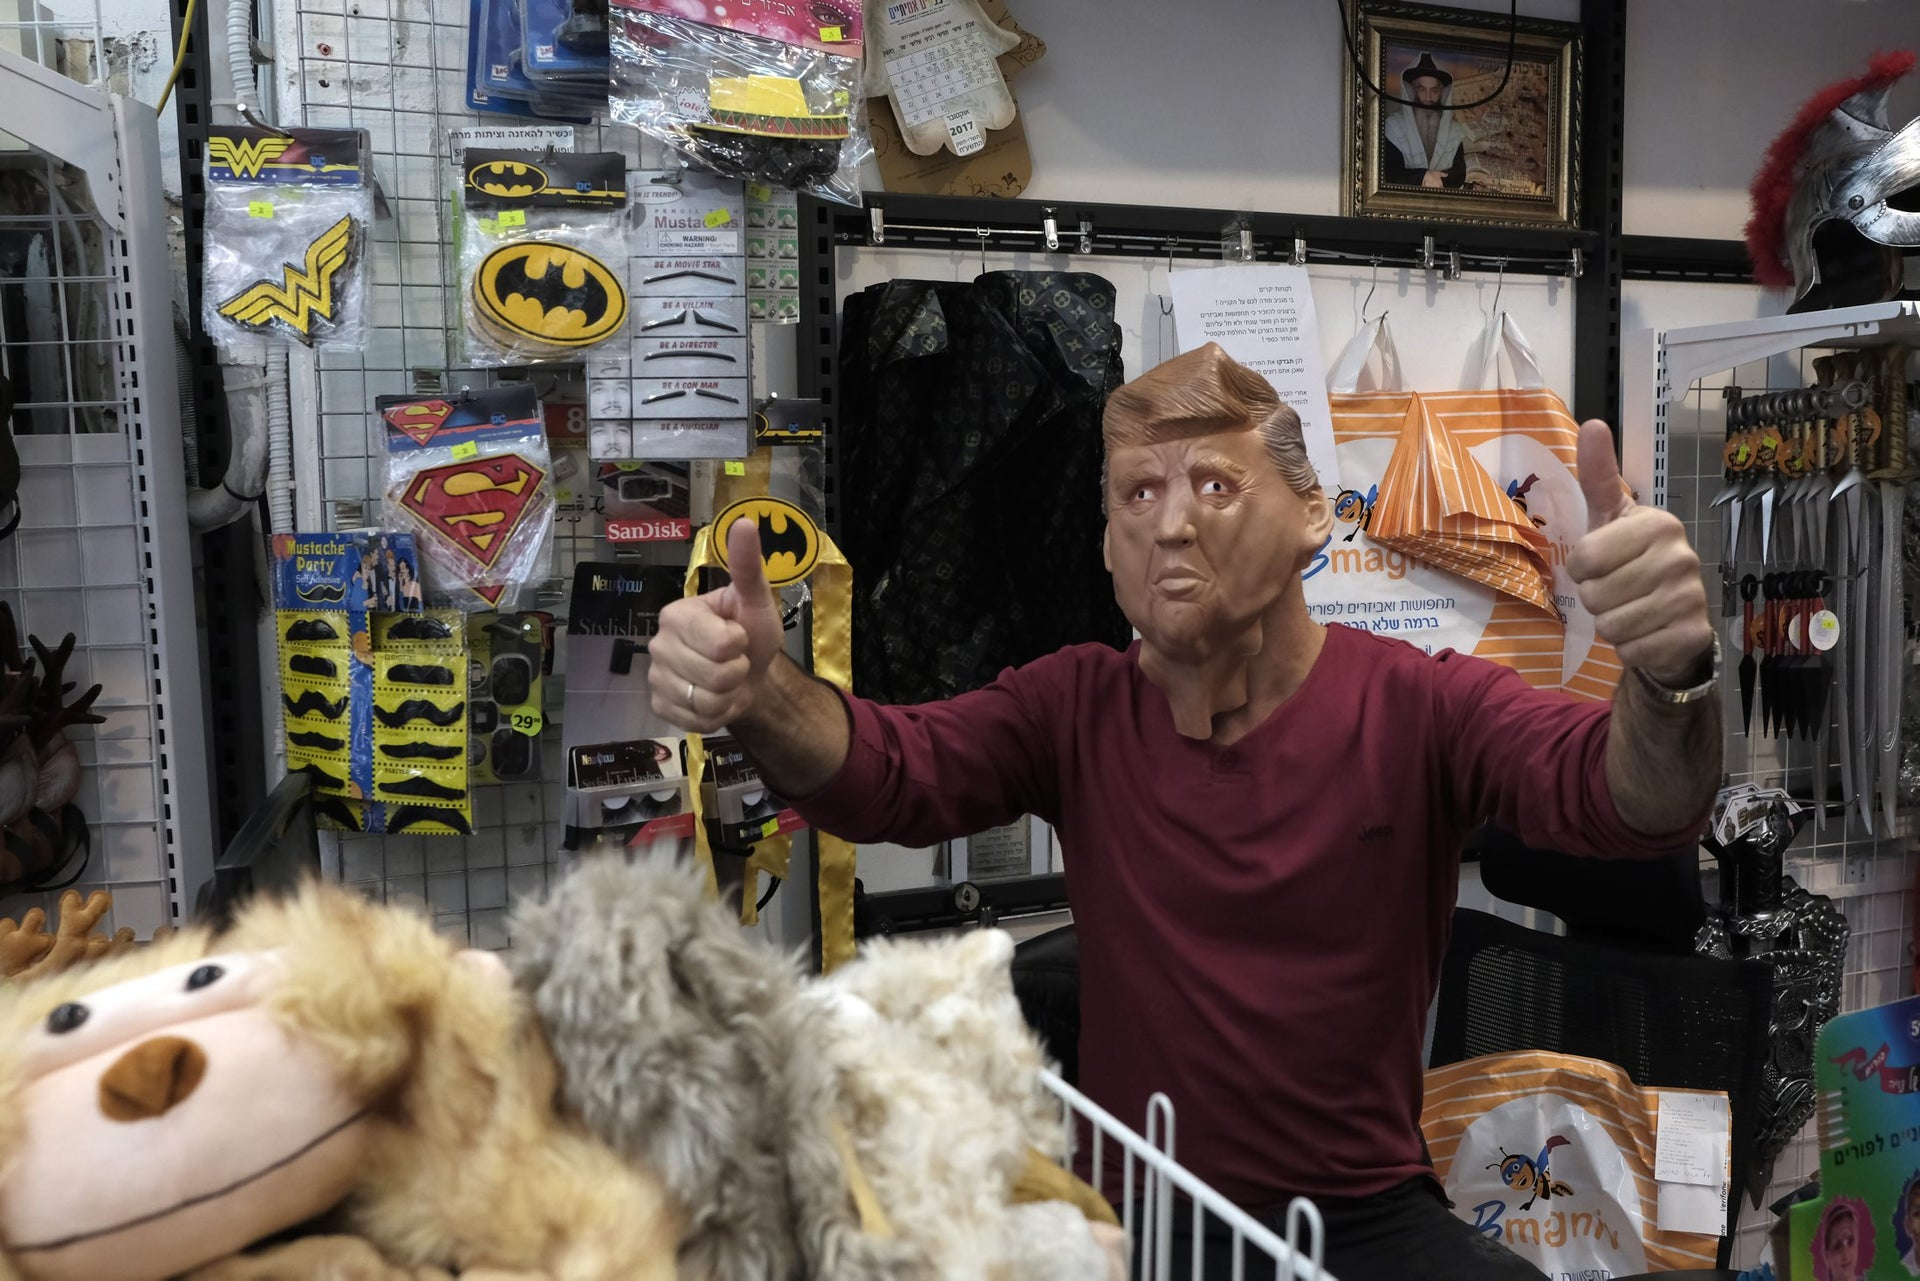 A man posing as President Donald Trump in the Effects store in Herzliya.